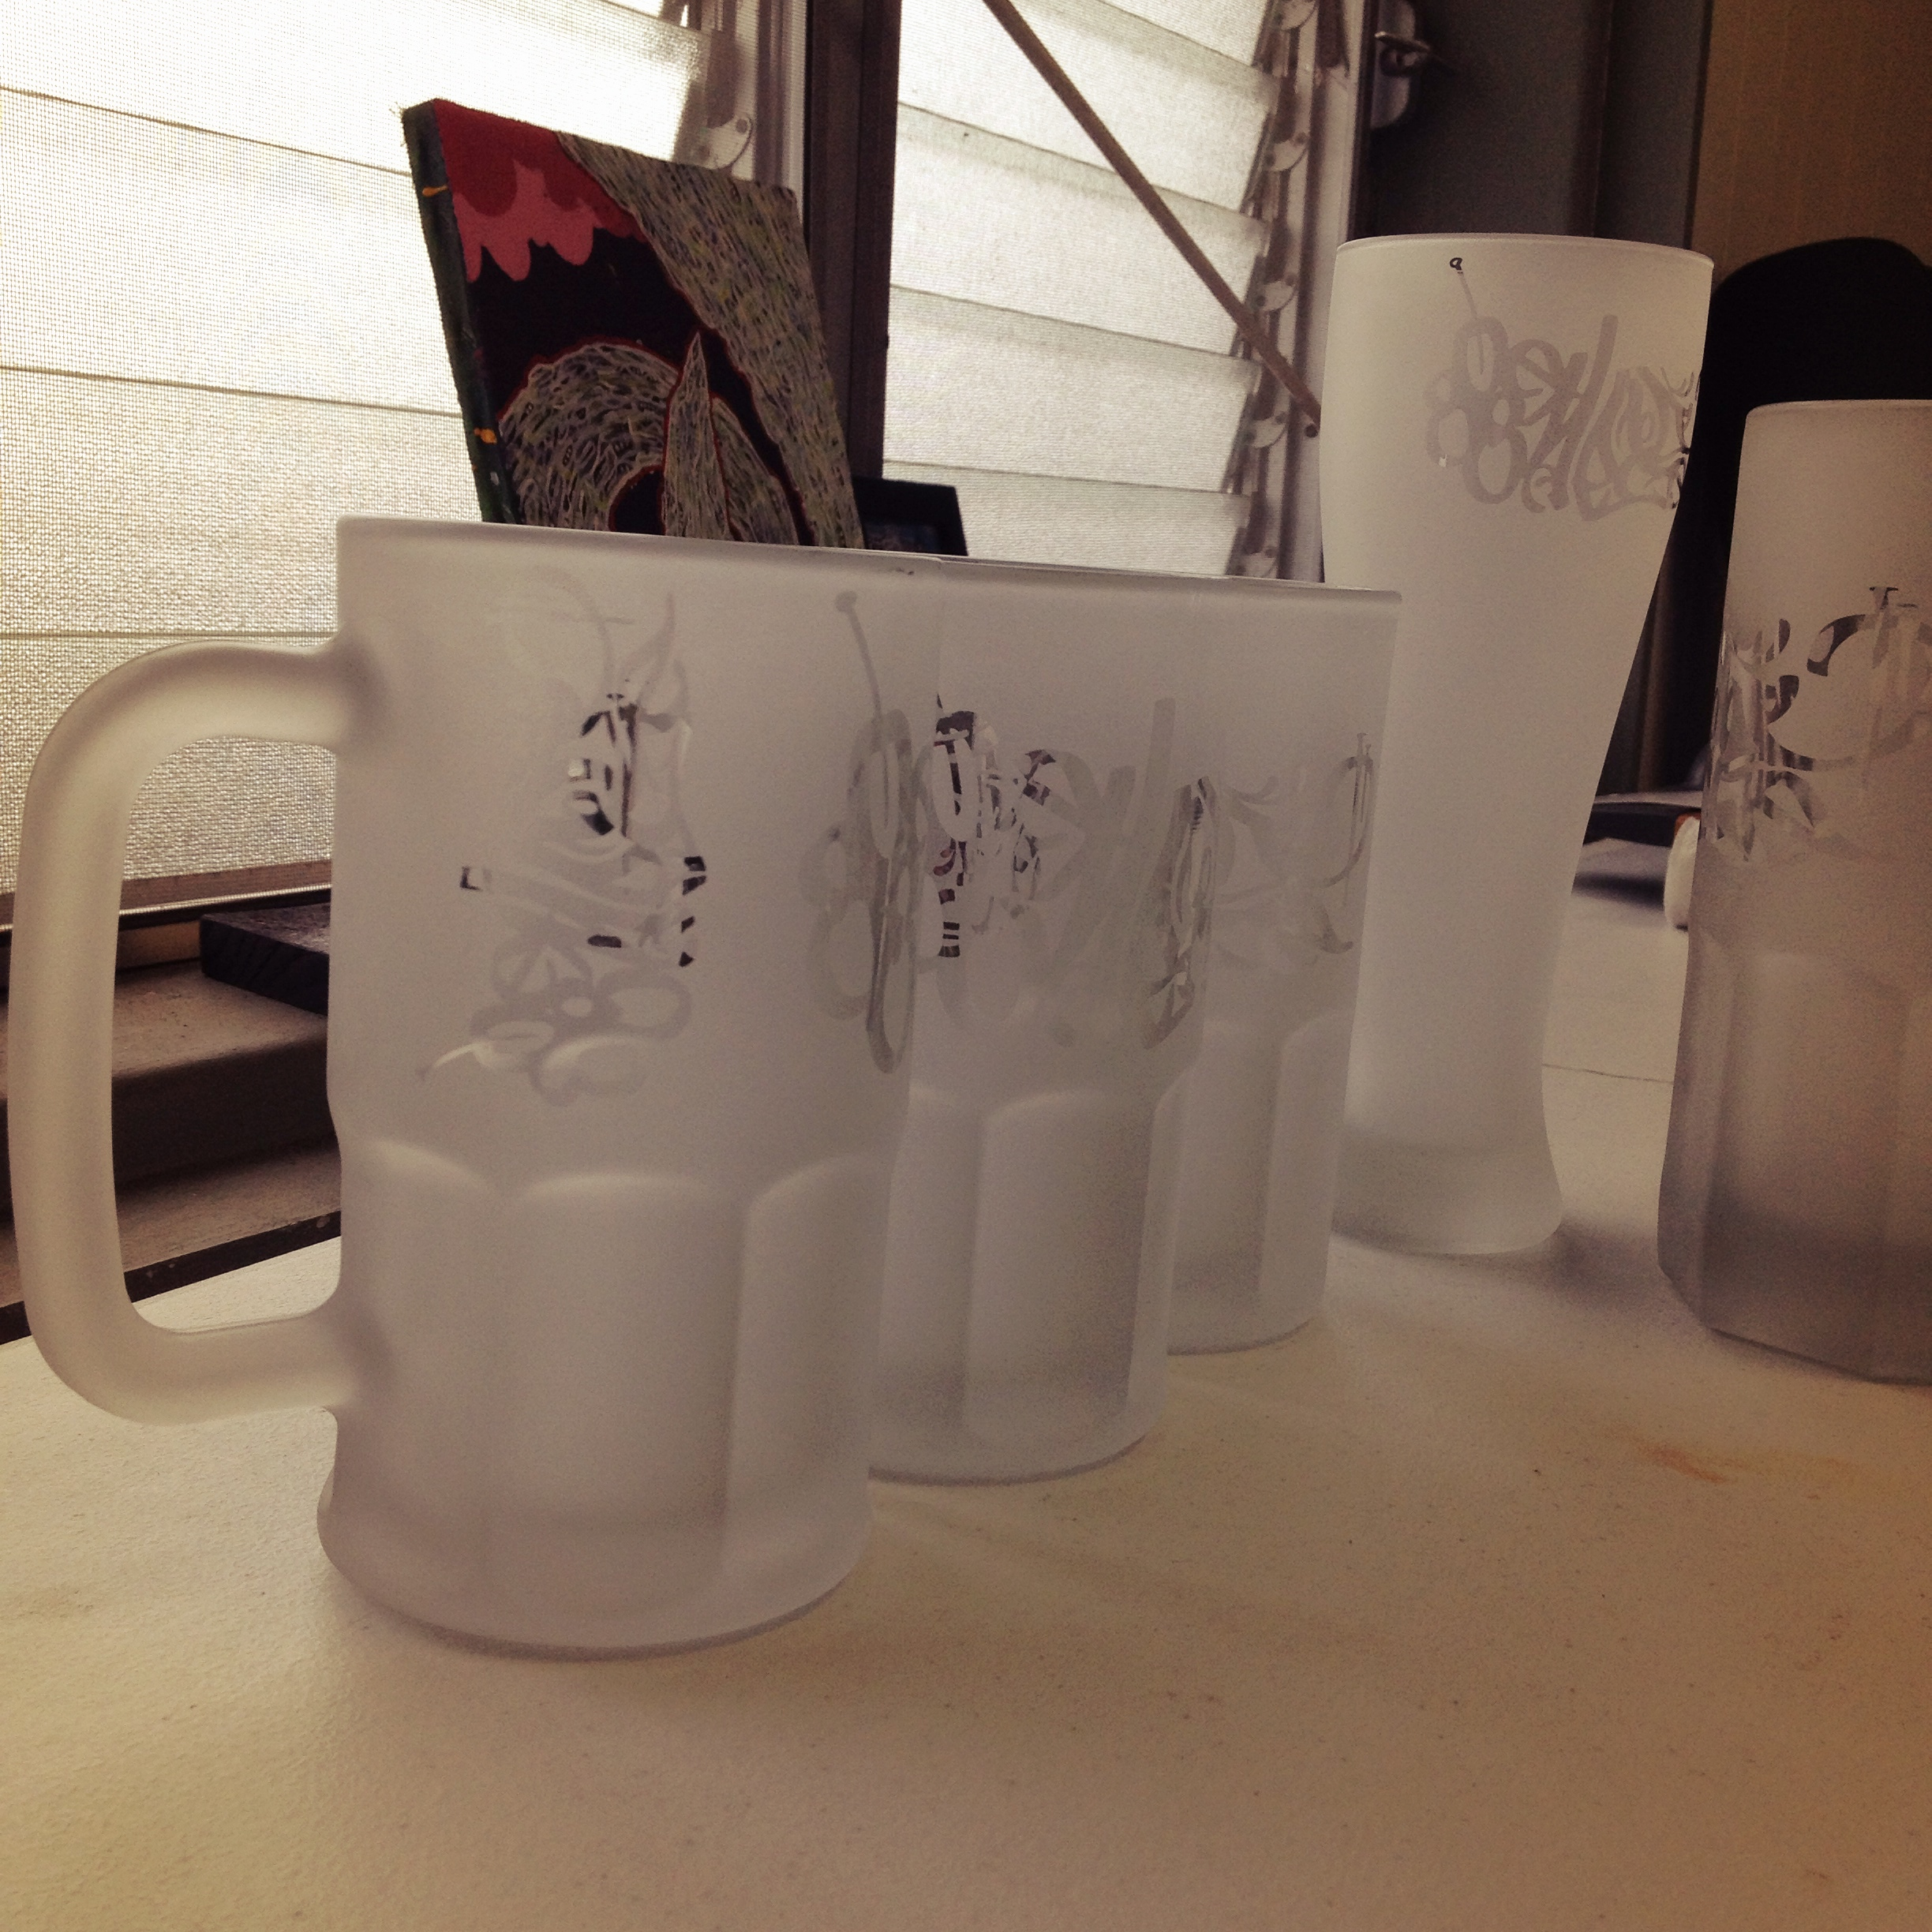 New 808 Empire Hand etched mugs are in. Limited to 25pcs